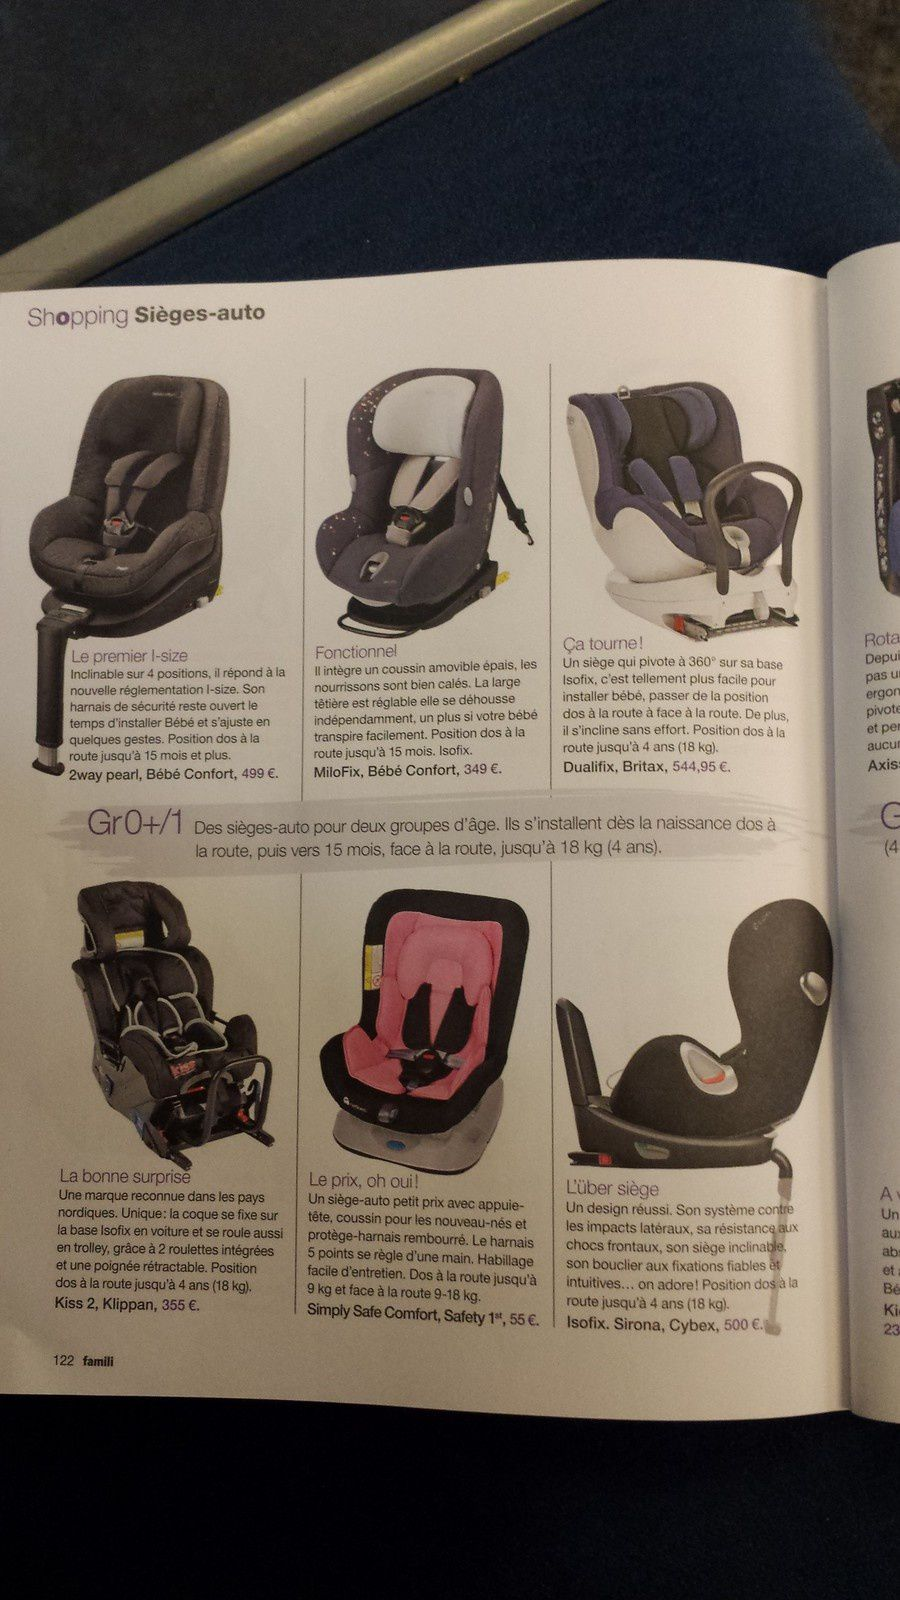 en voiture baby la s lection shopping si ges auto de famili quand un discours plus expert. Black Bedroom Furniture Sets. Home Design Ideas